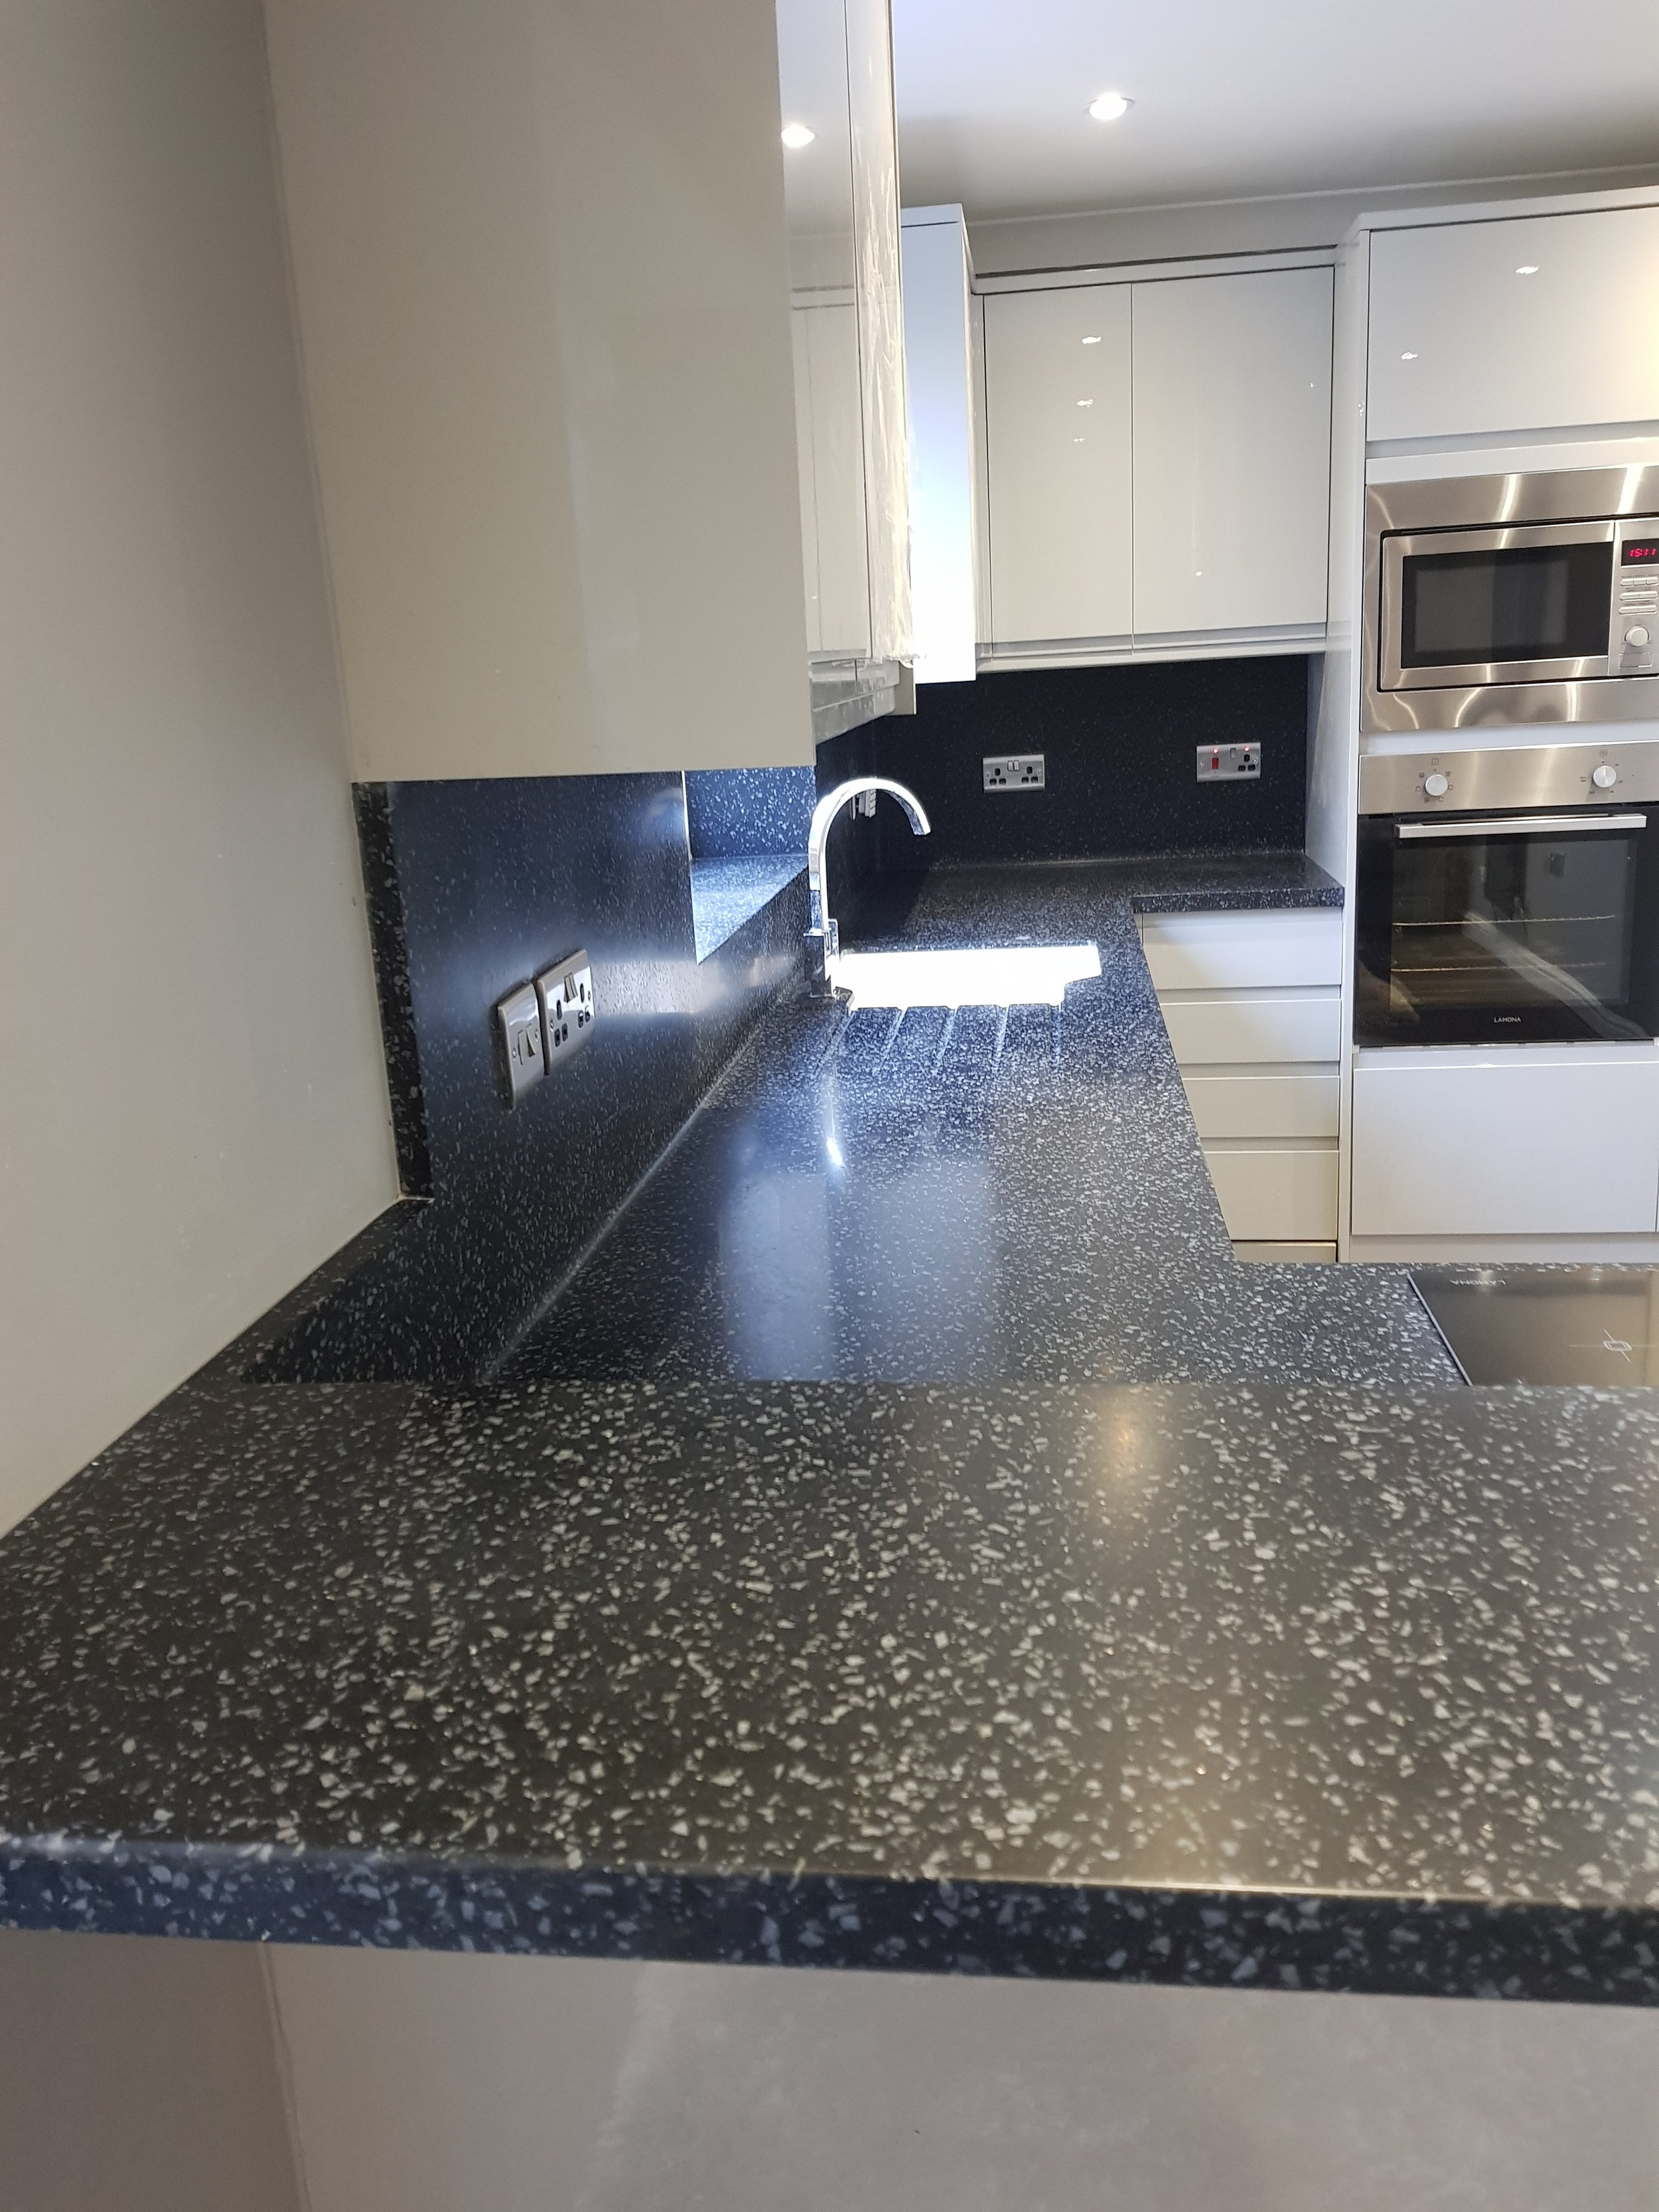 Fabricated by L&B Solid Surfaces